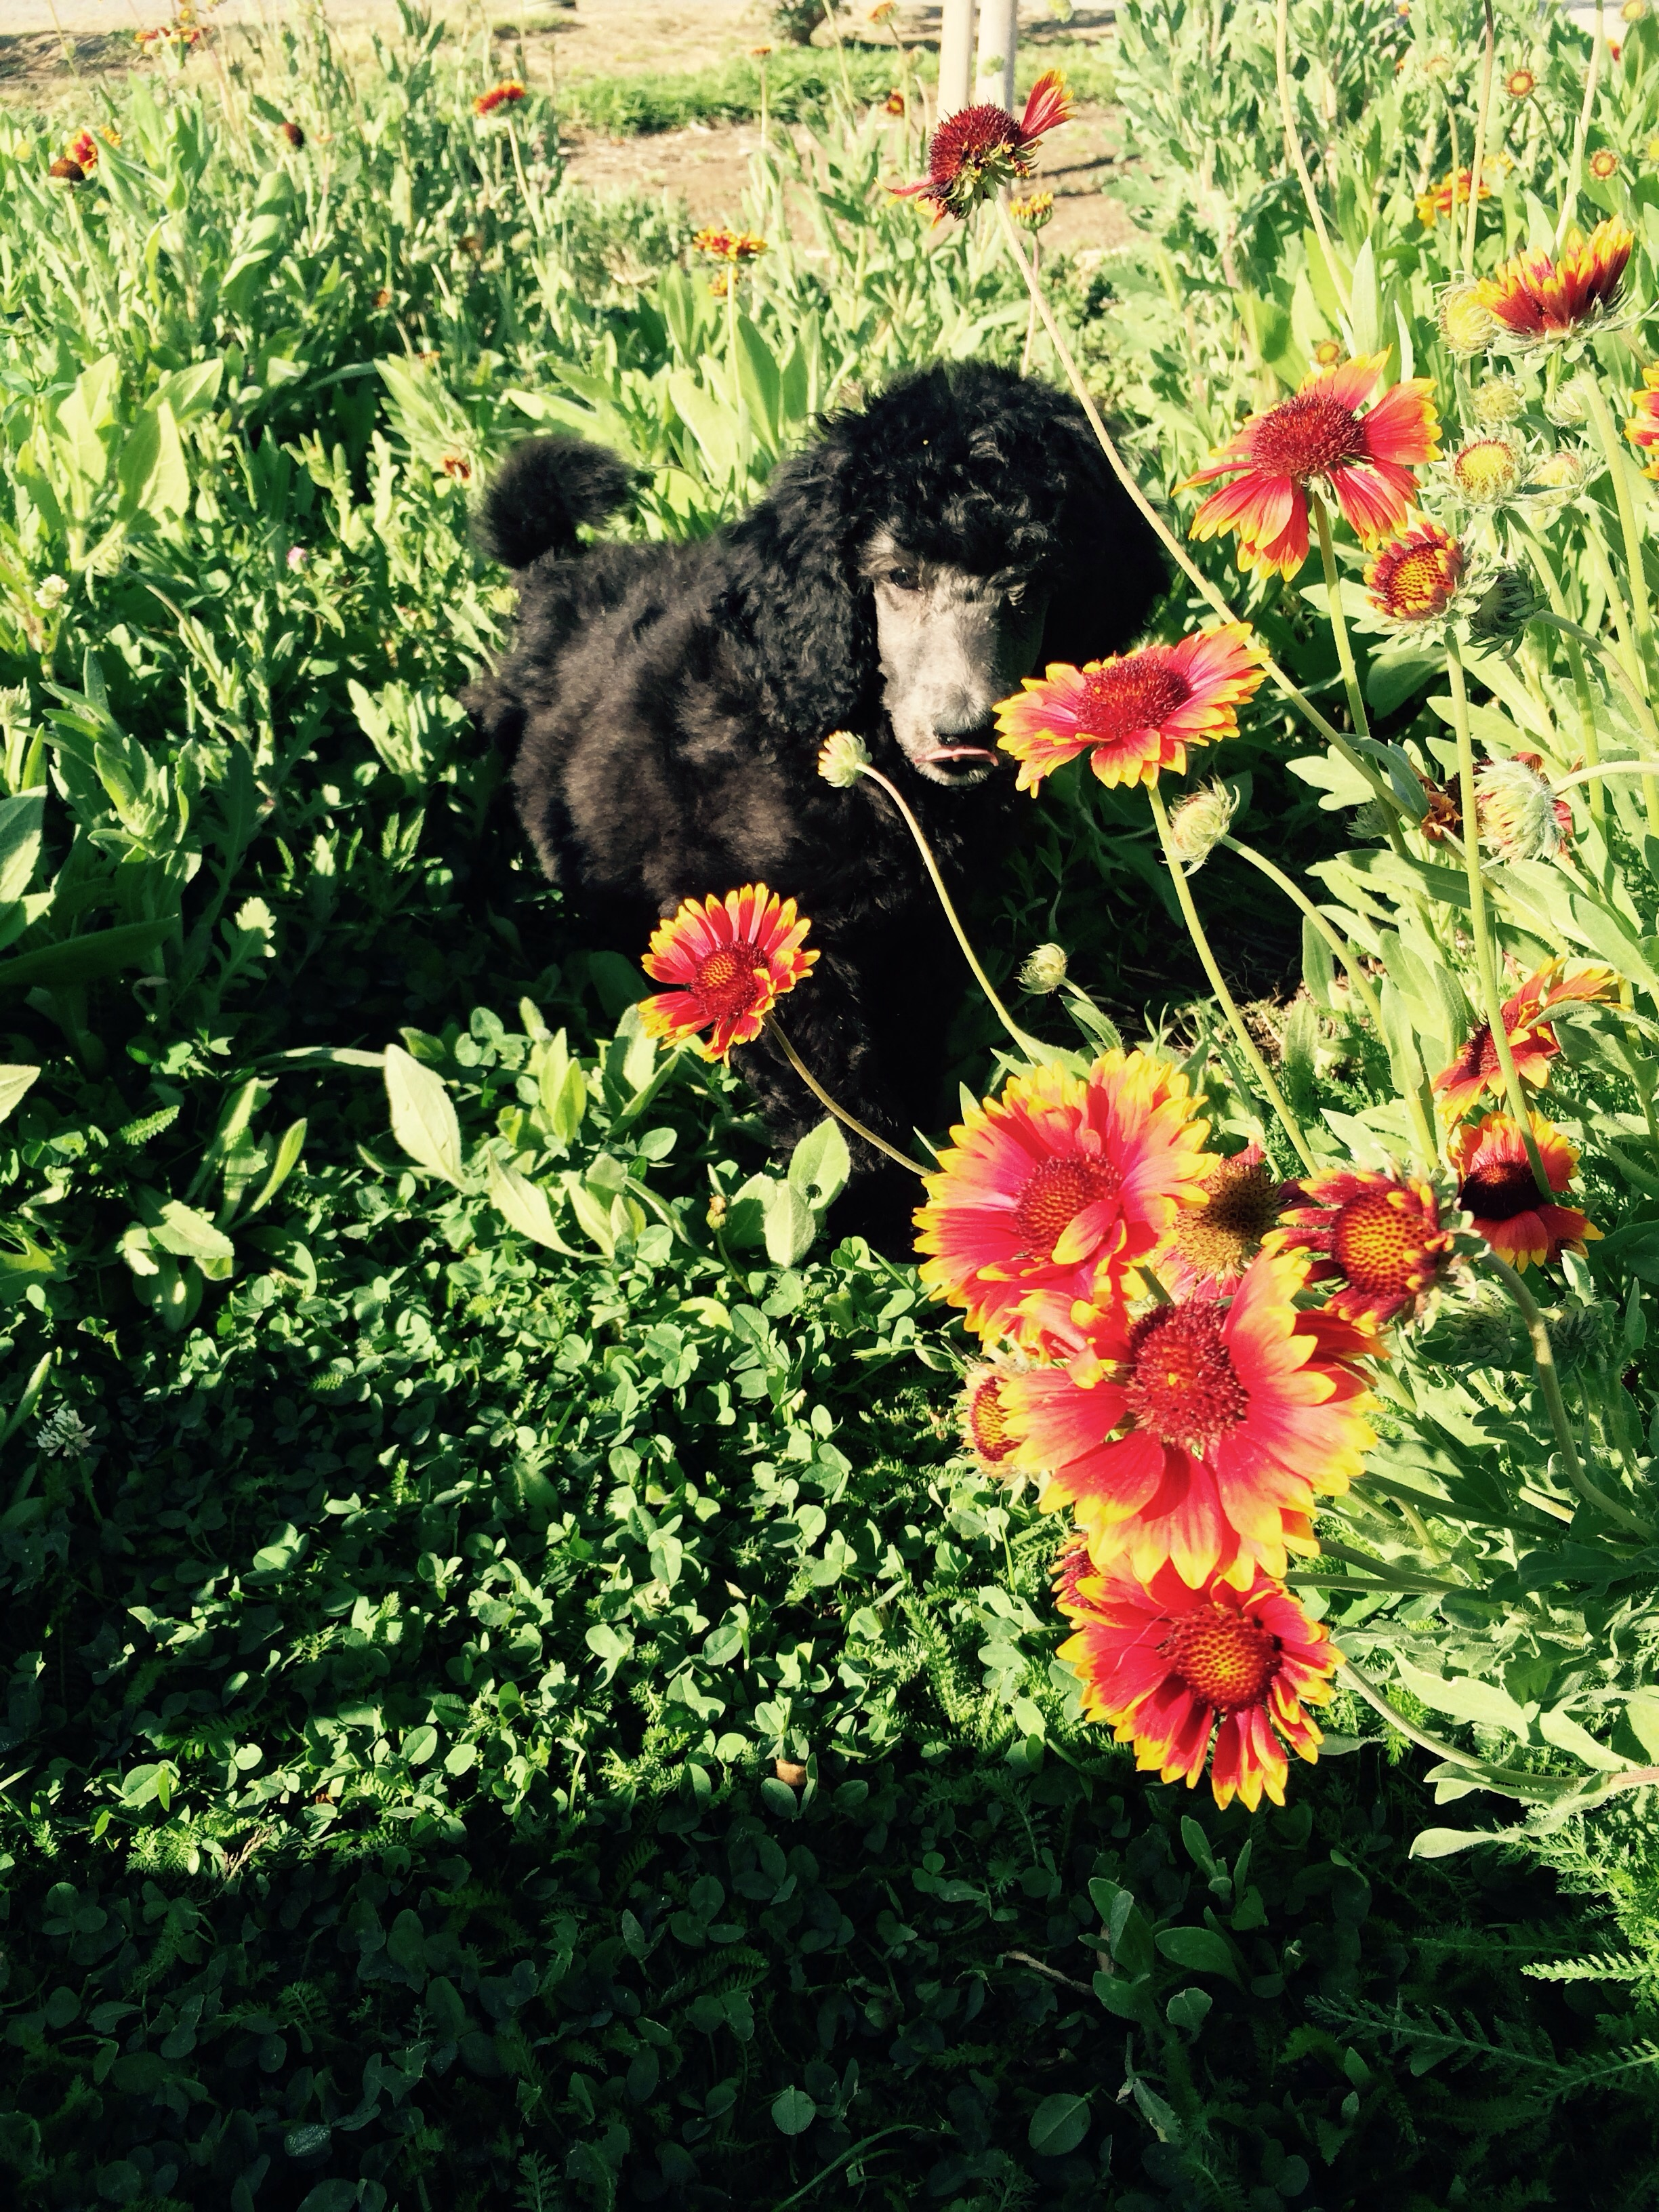 We are slowly introducing Sampson to the farm as he will be a working dog as he grows up